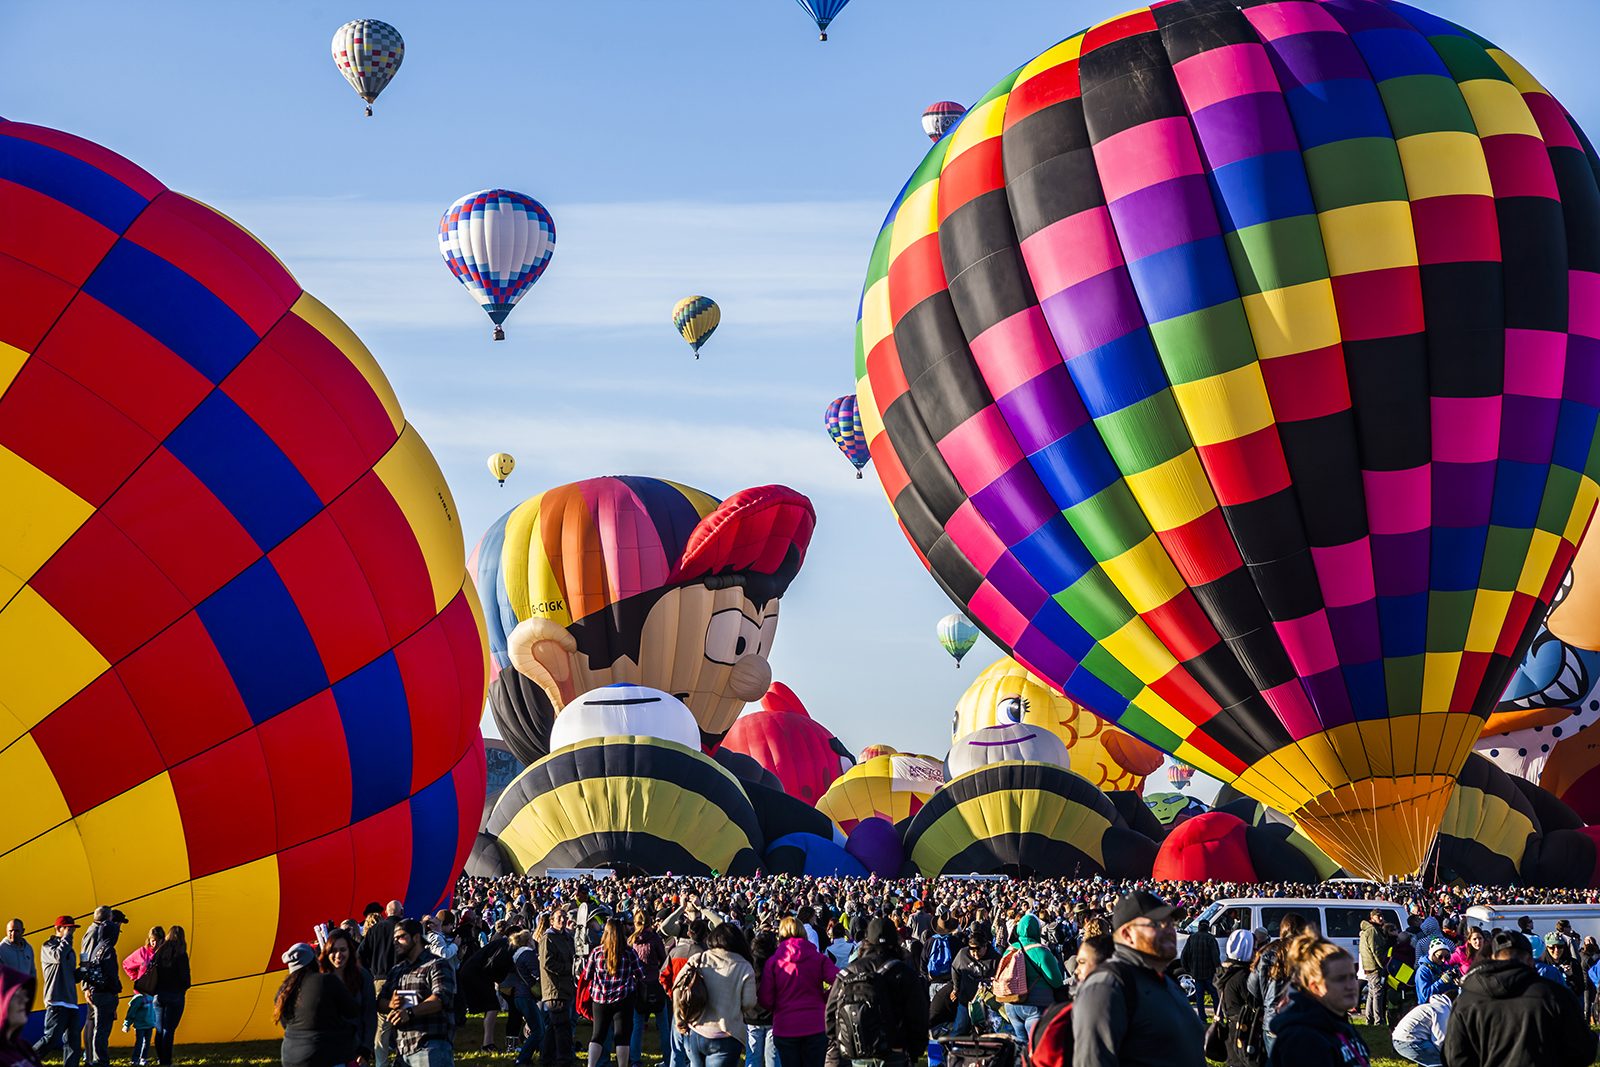 Albuquerque International Balloon Fiesta: What to Know